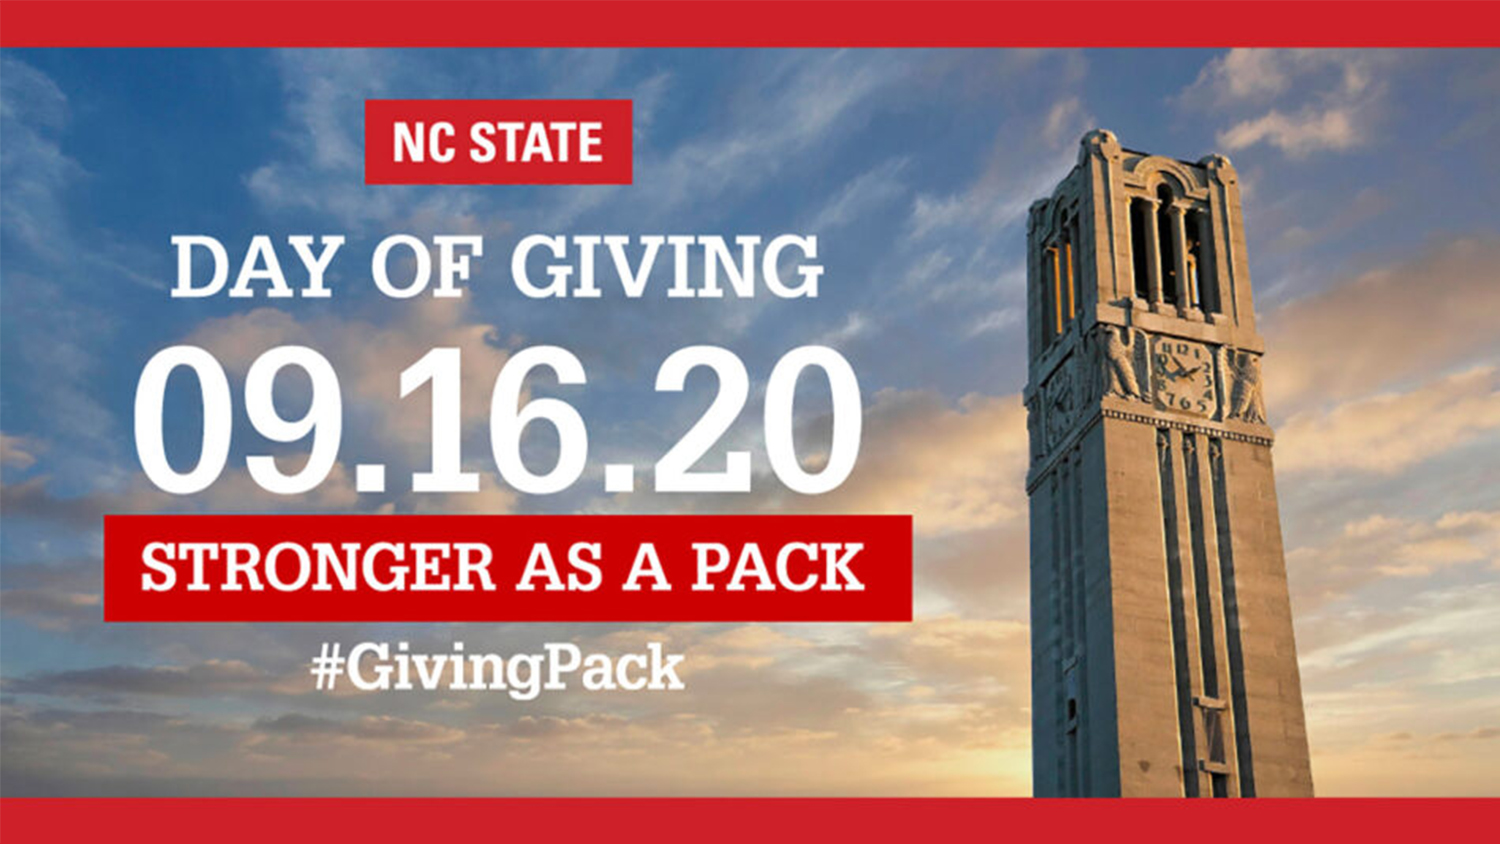 NC State Day of Giving image